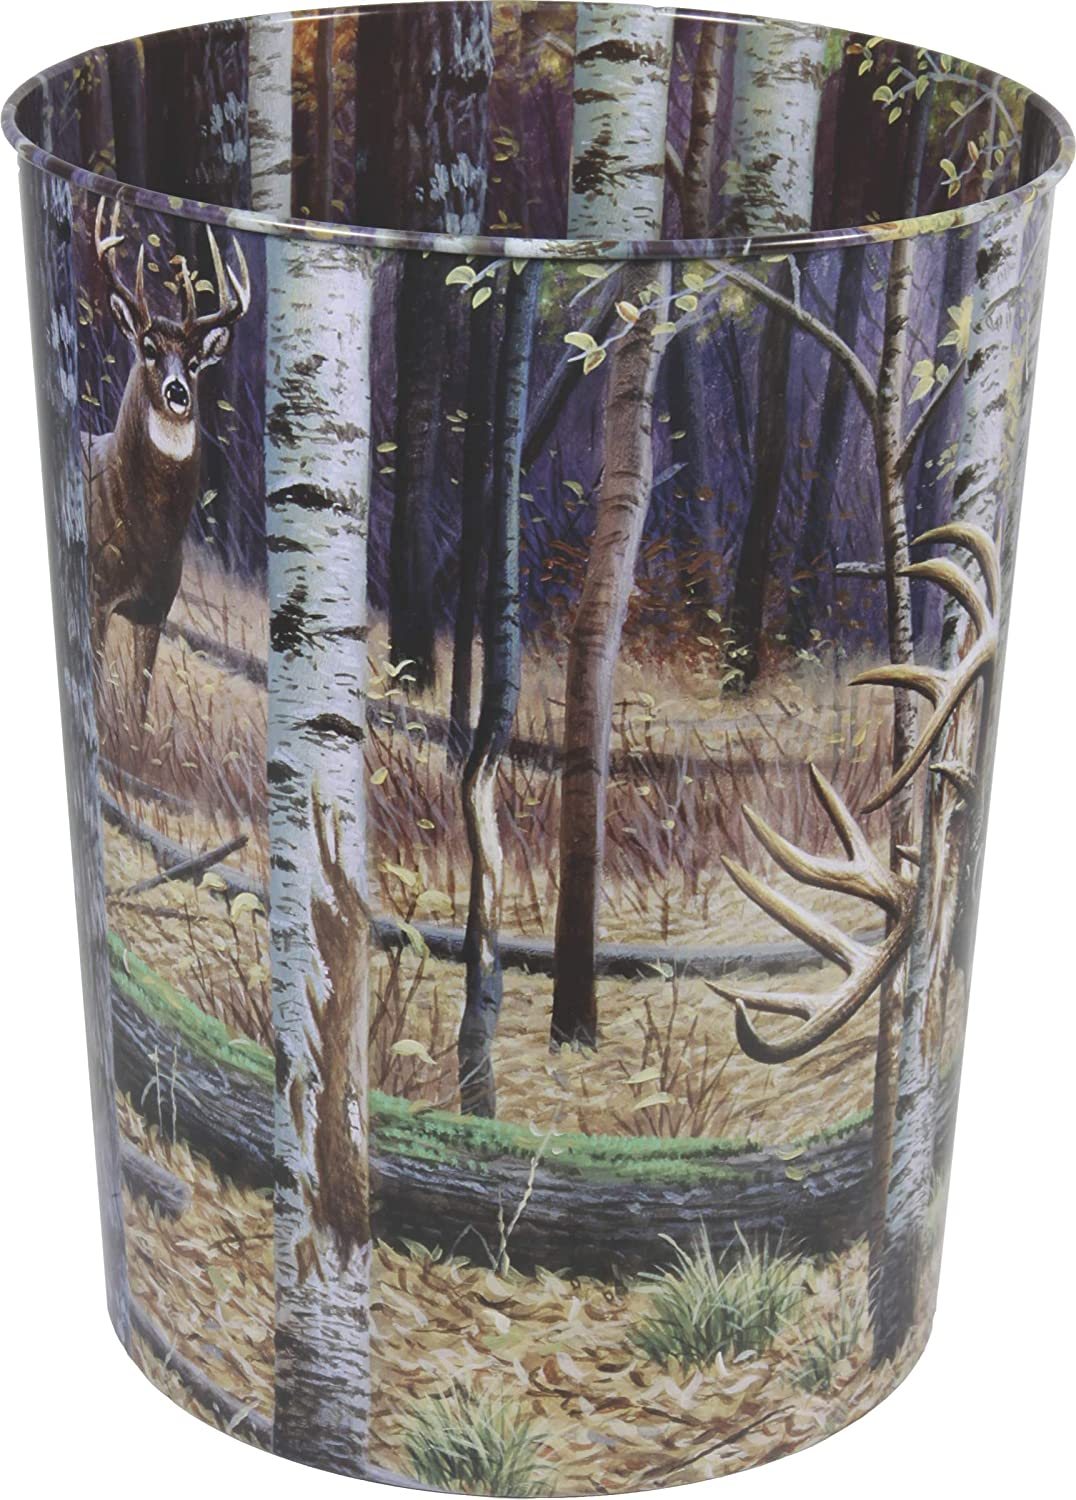 River's Edge Products Waste Basket 1577, Multicolor, One Size